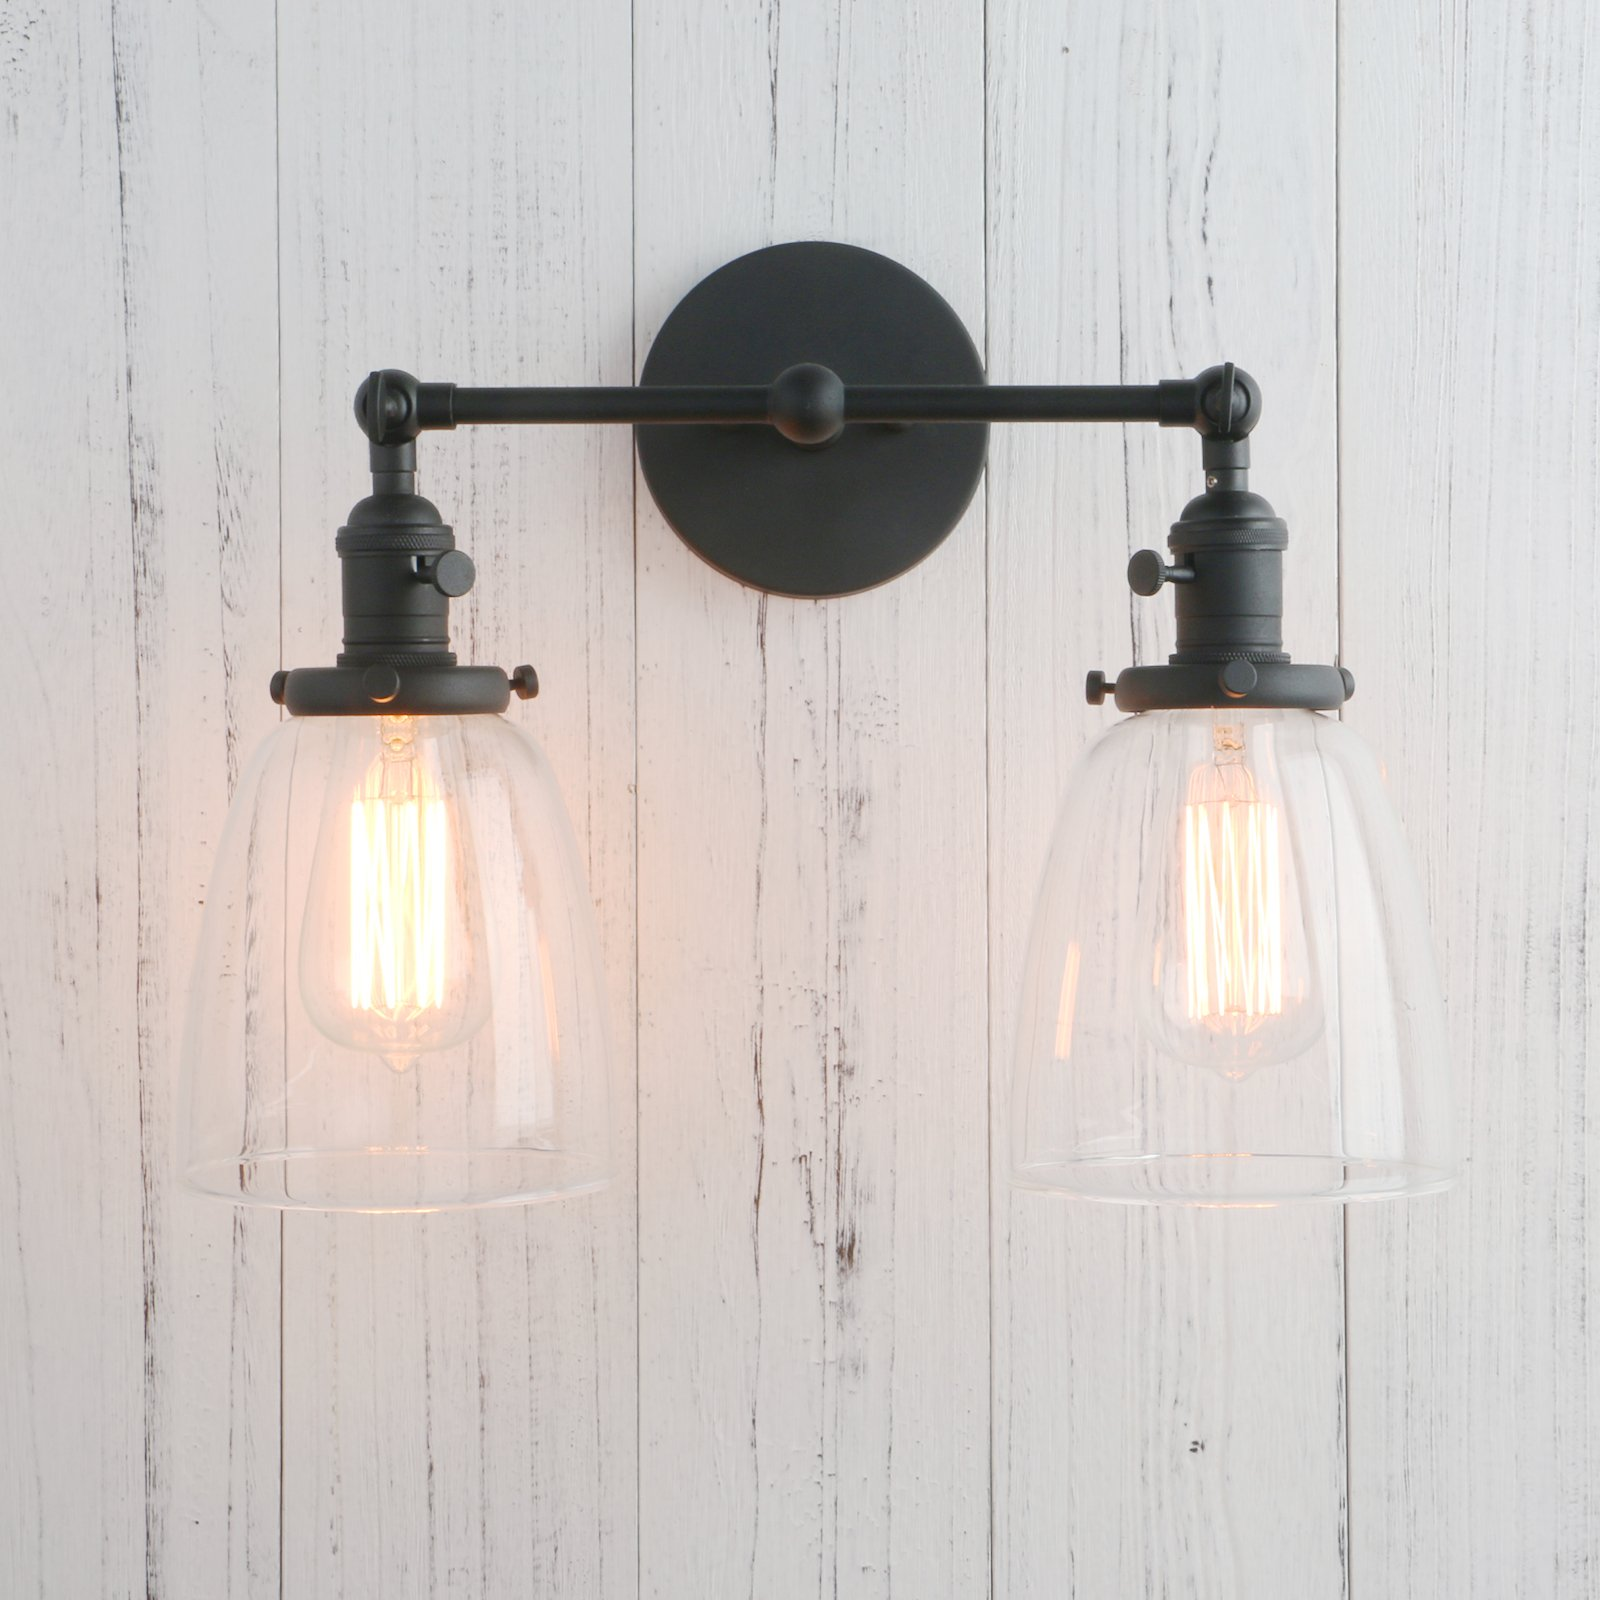 Permo Double Sconce Vintage Industrial Antique 2-Lights Wall Sconces with Oval Cone Clear Glass Shade (Black) by Permo